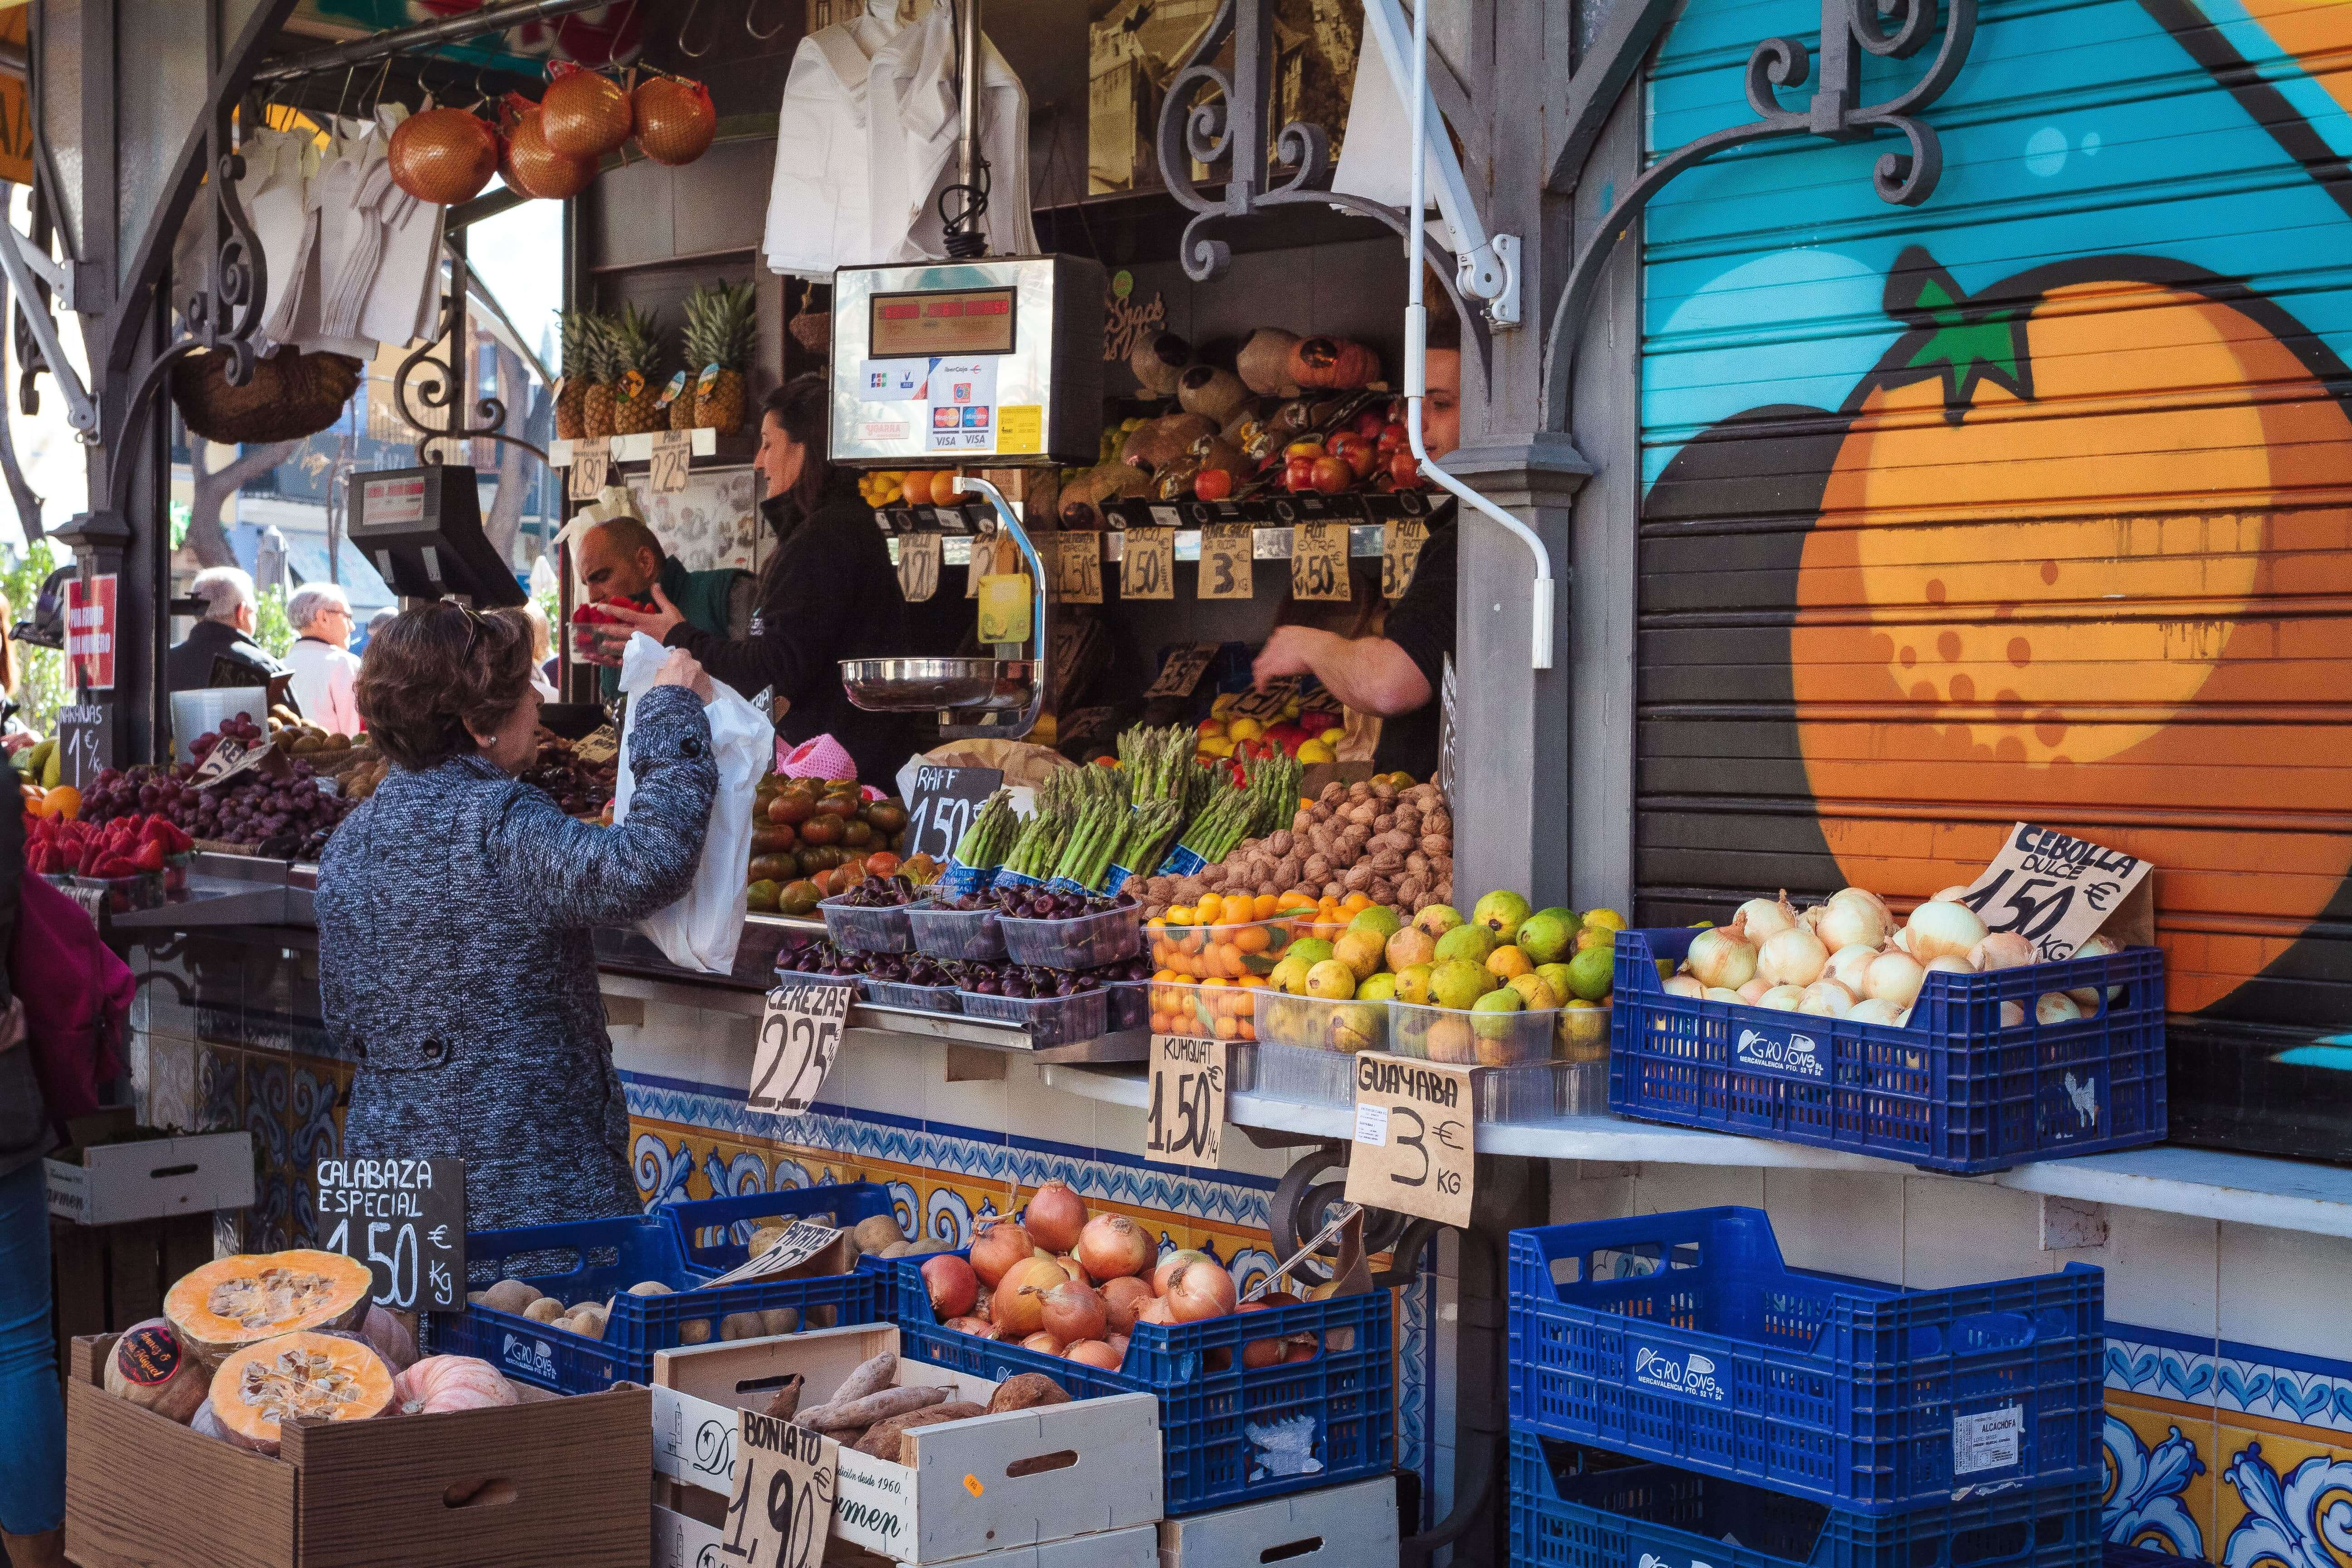 cost of living in valencia for buying fruits and vegetables is low